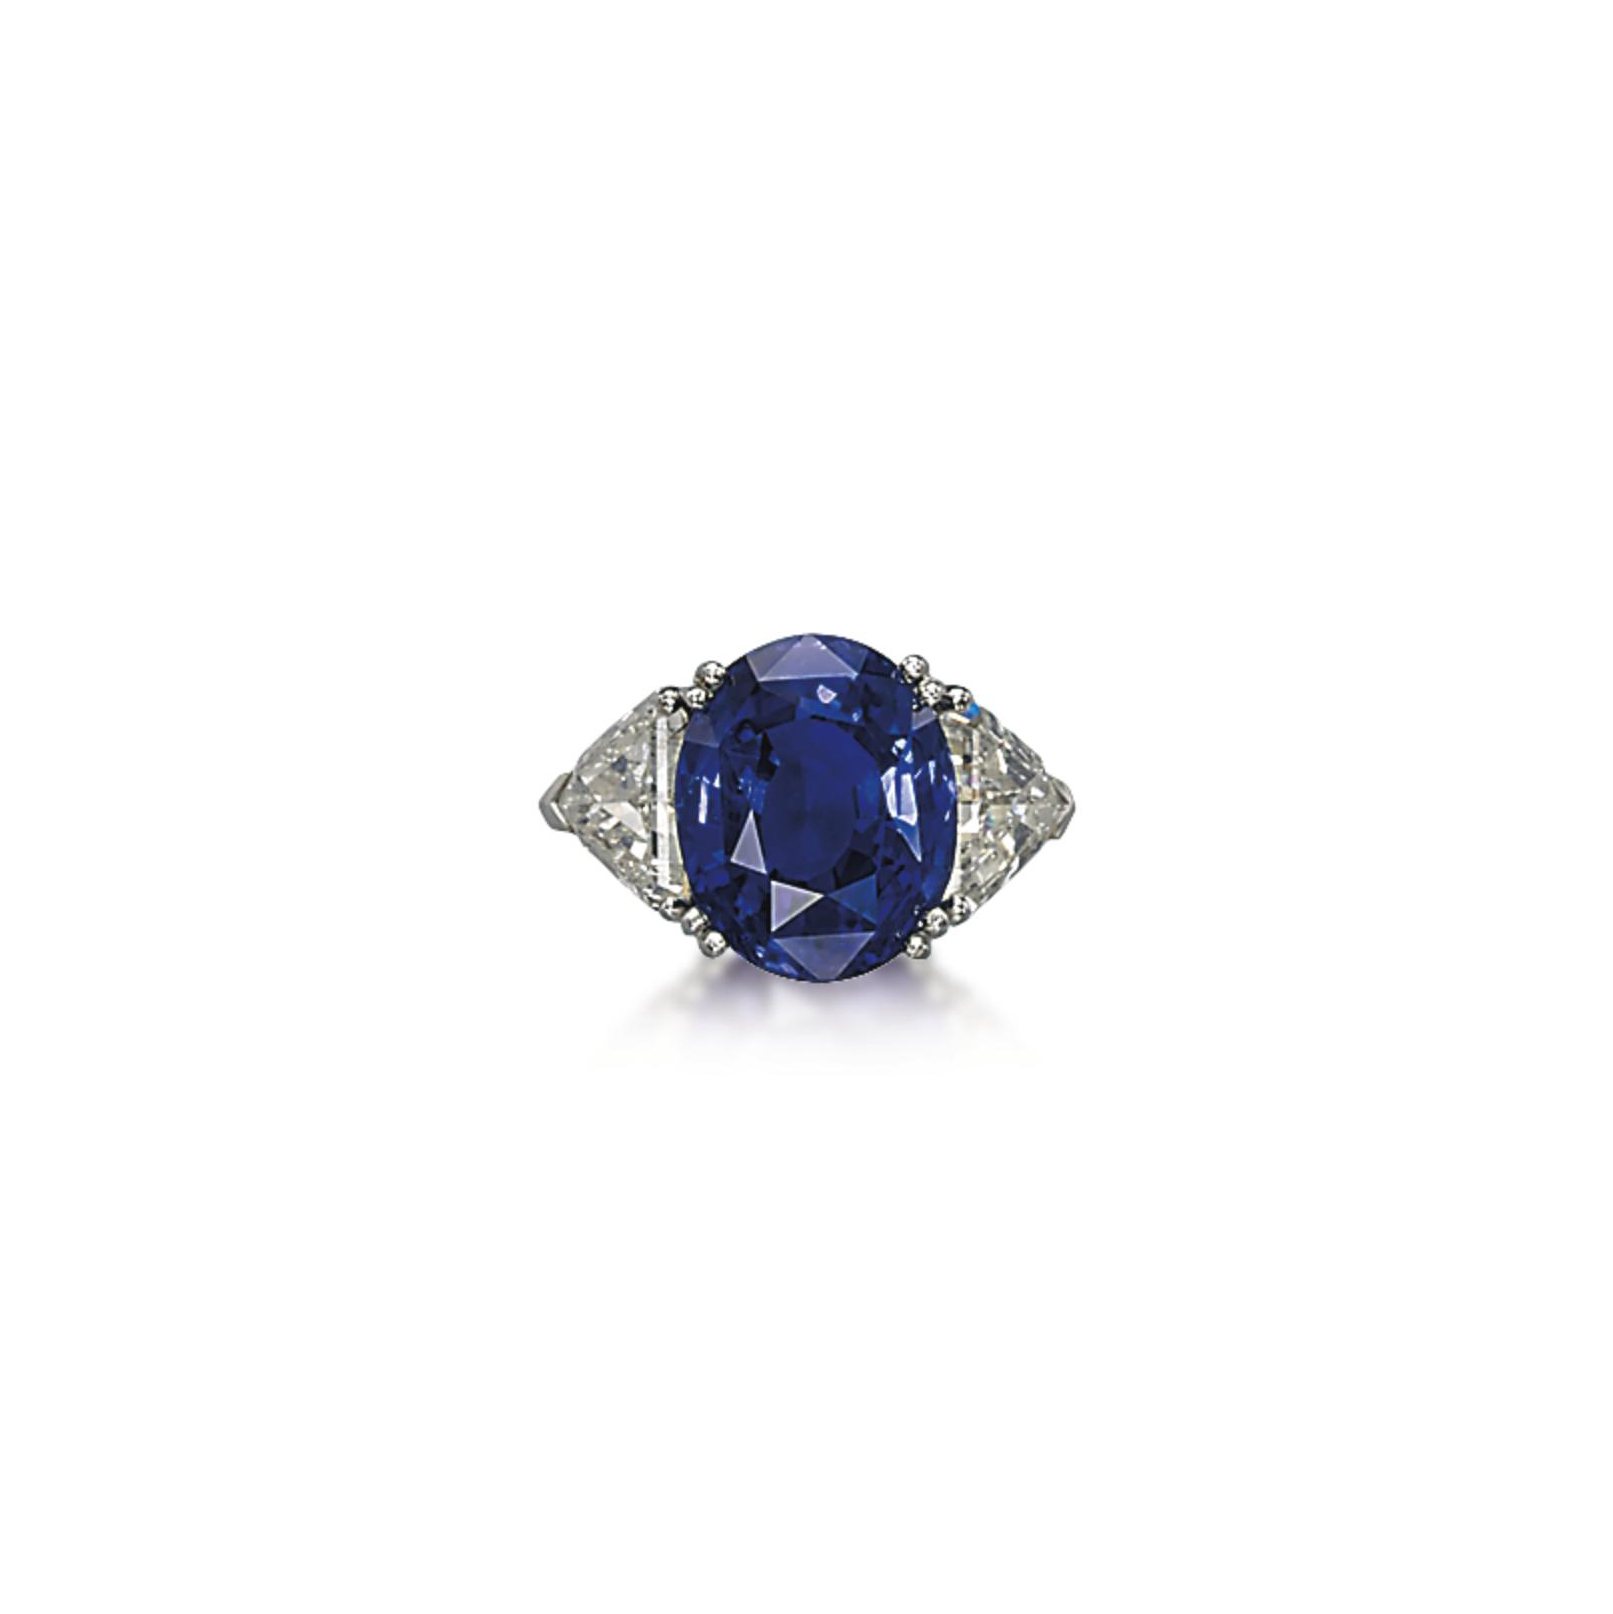 A SAPPHIRE AND DIAMOND RING, BY FASANO